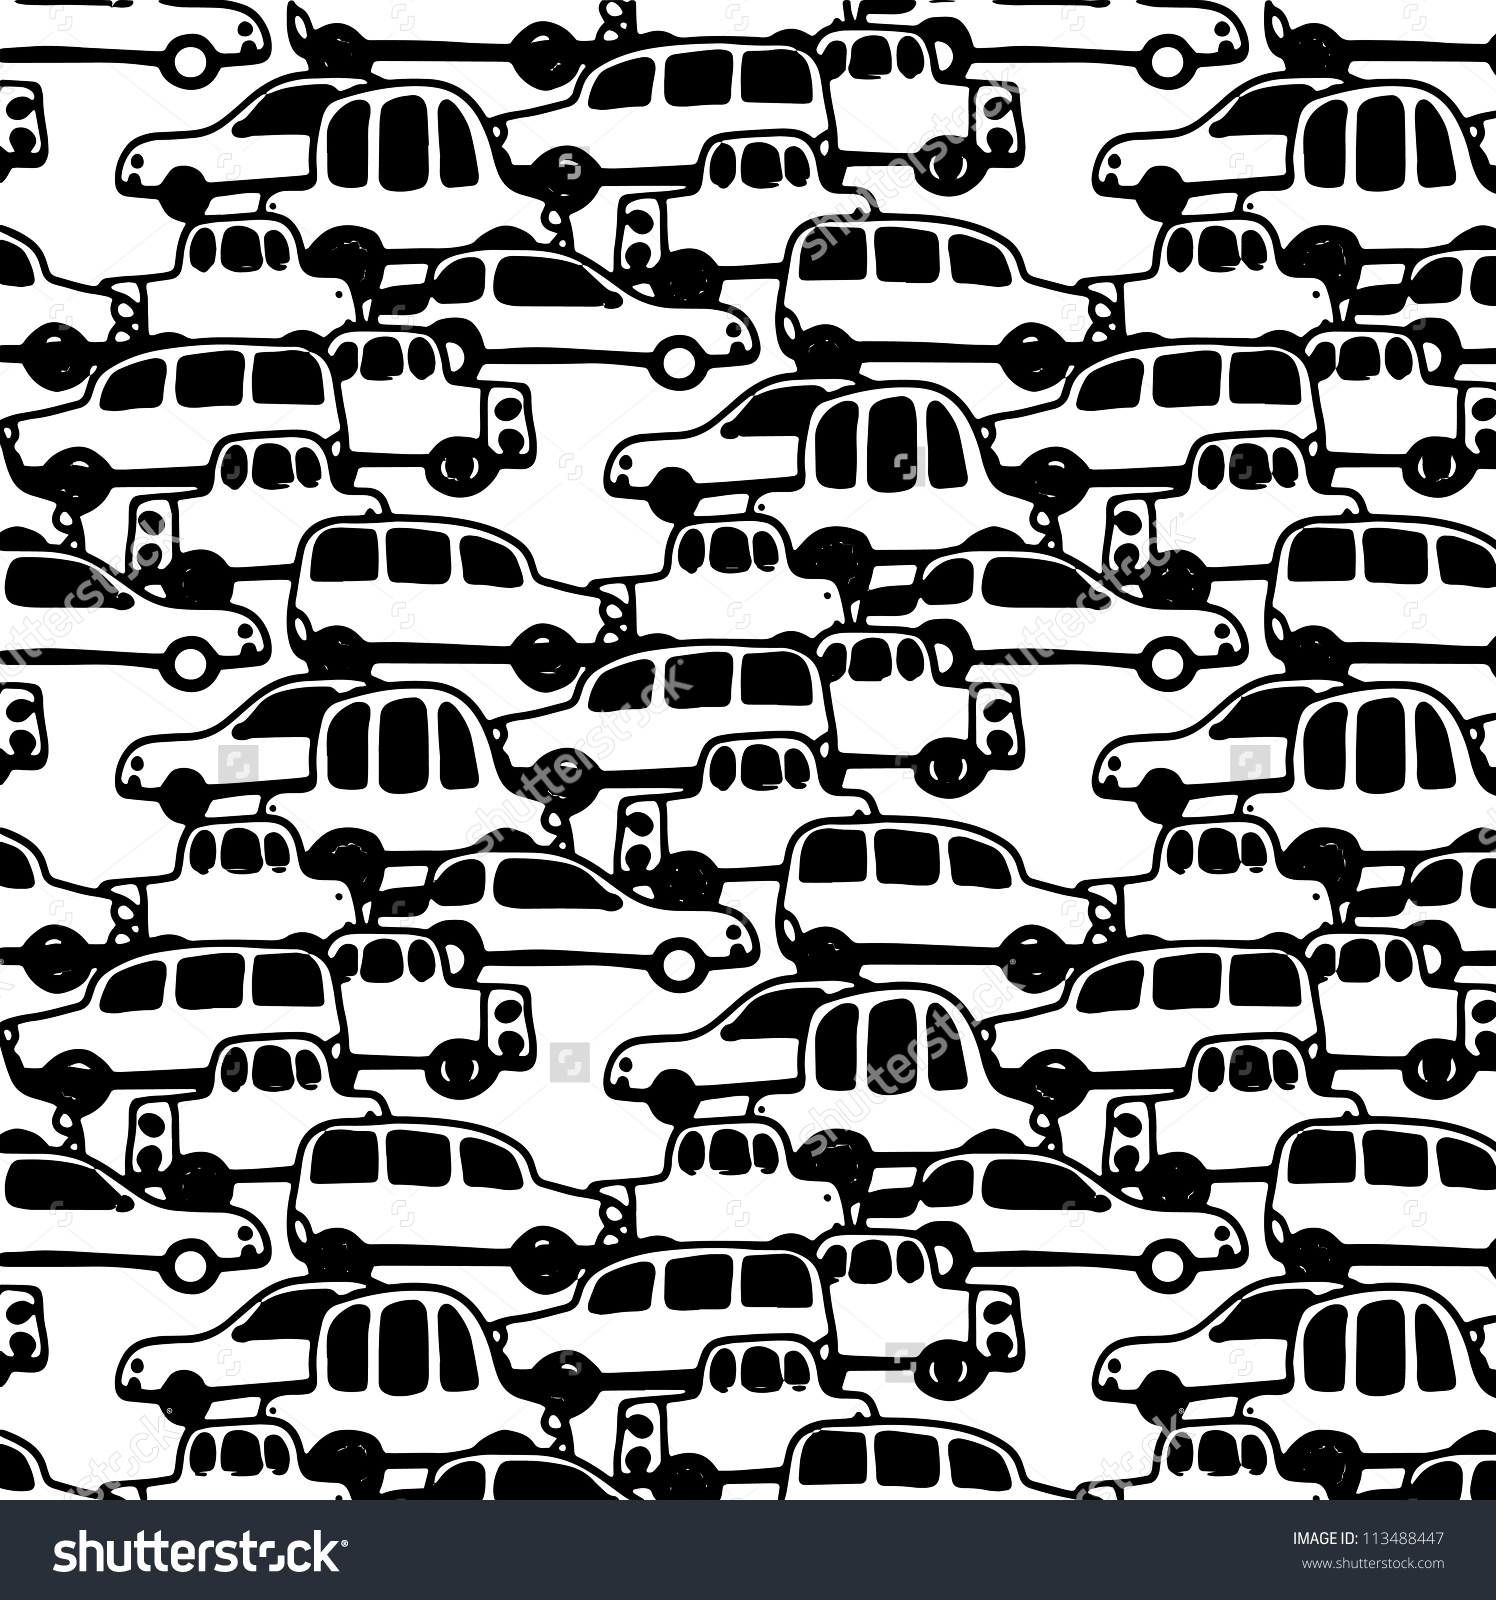 Traffic clipart black and white vector black and white library Free Traffic Jam Cliparts, Download Free Clip Art, Free Clip ... vector black and white library